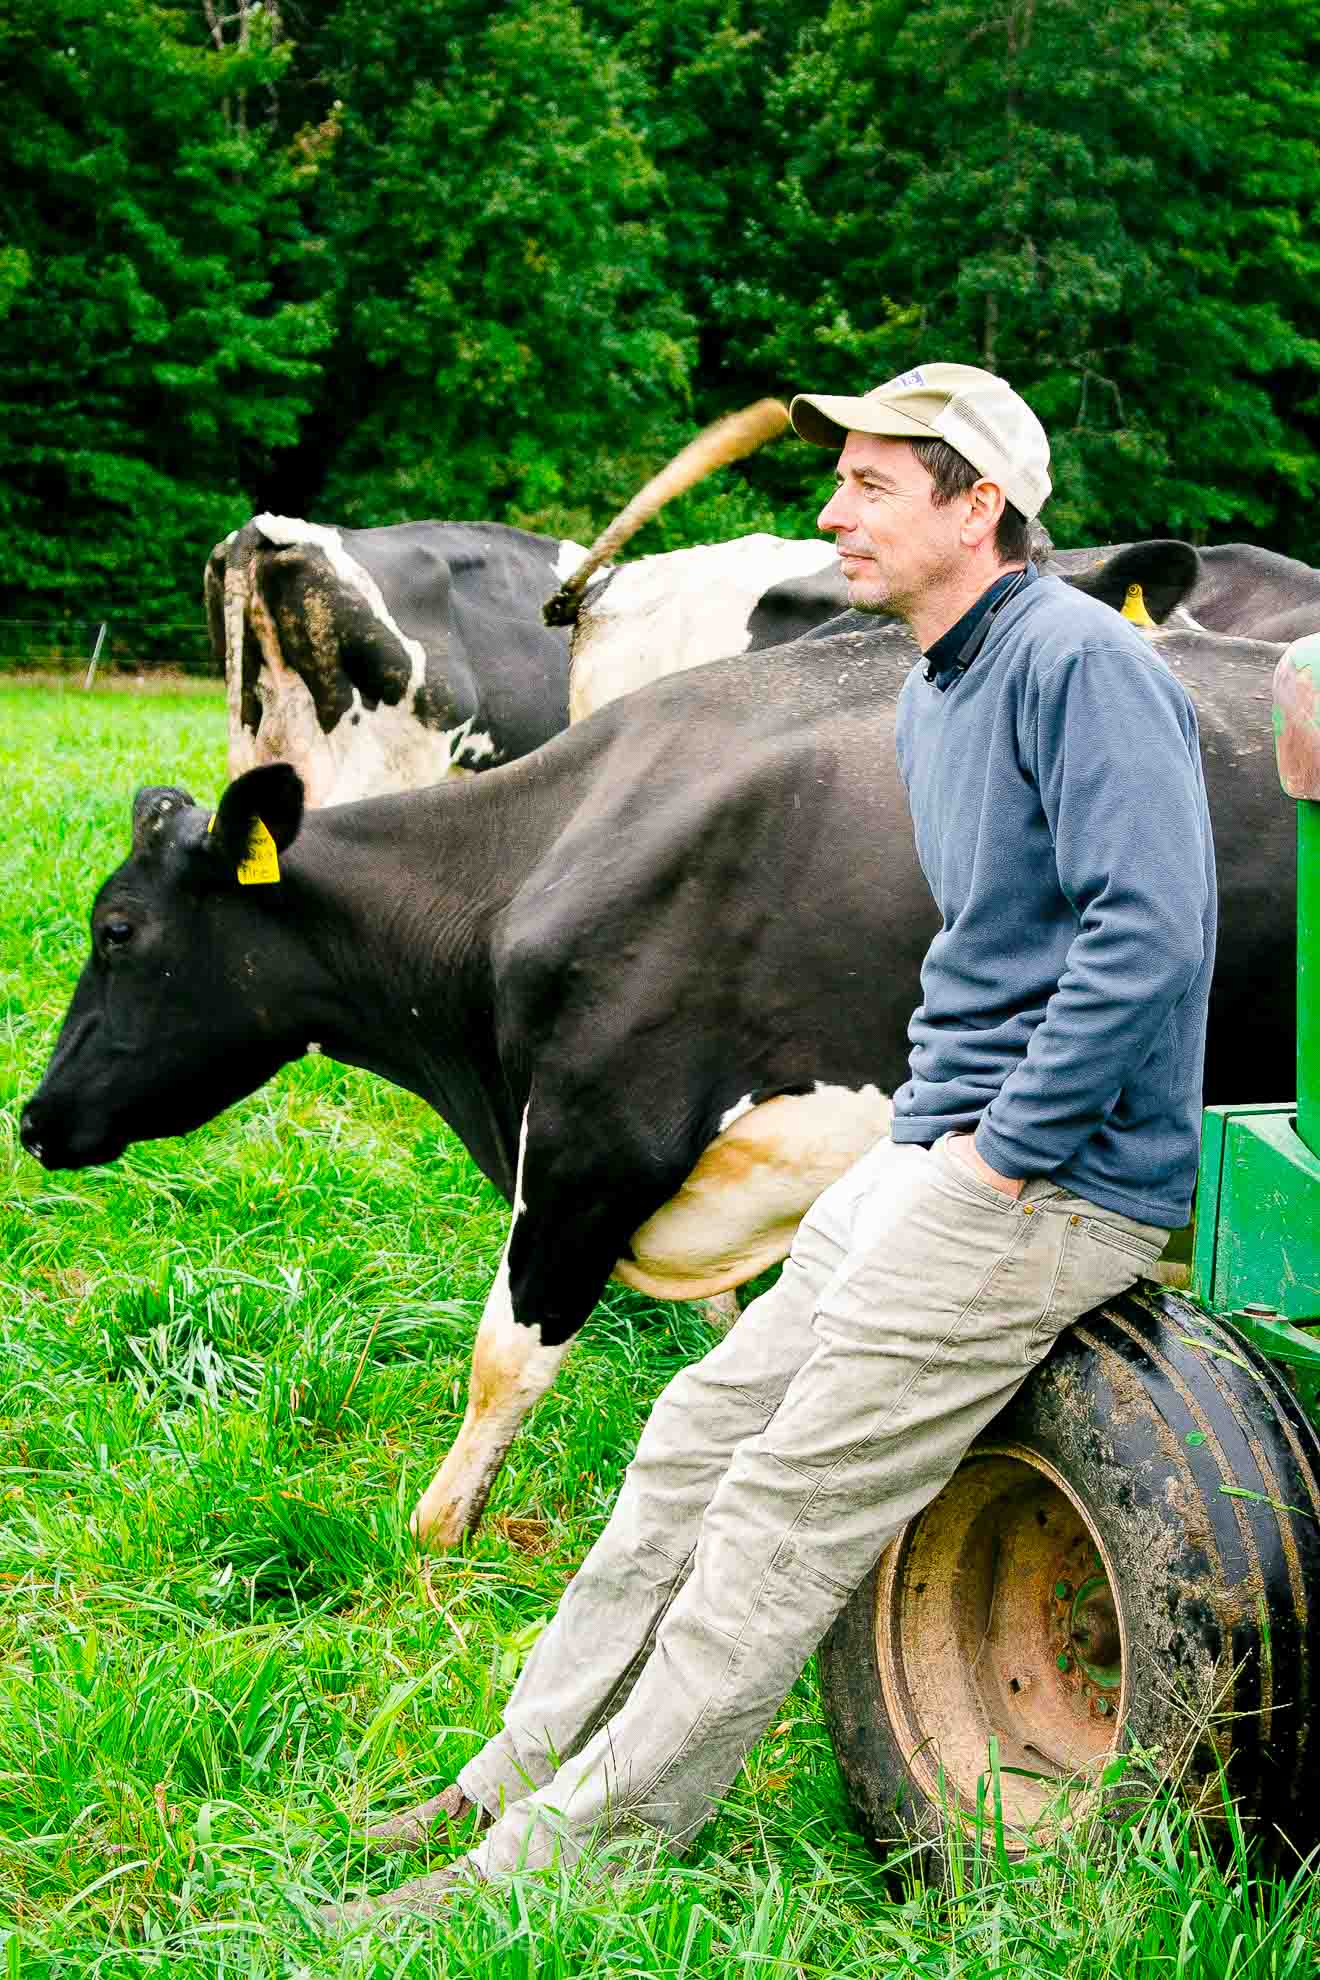 Pete, a co-owner of the Miller Organic Dairy Farm in Vermont